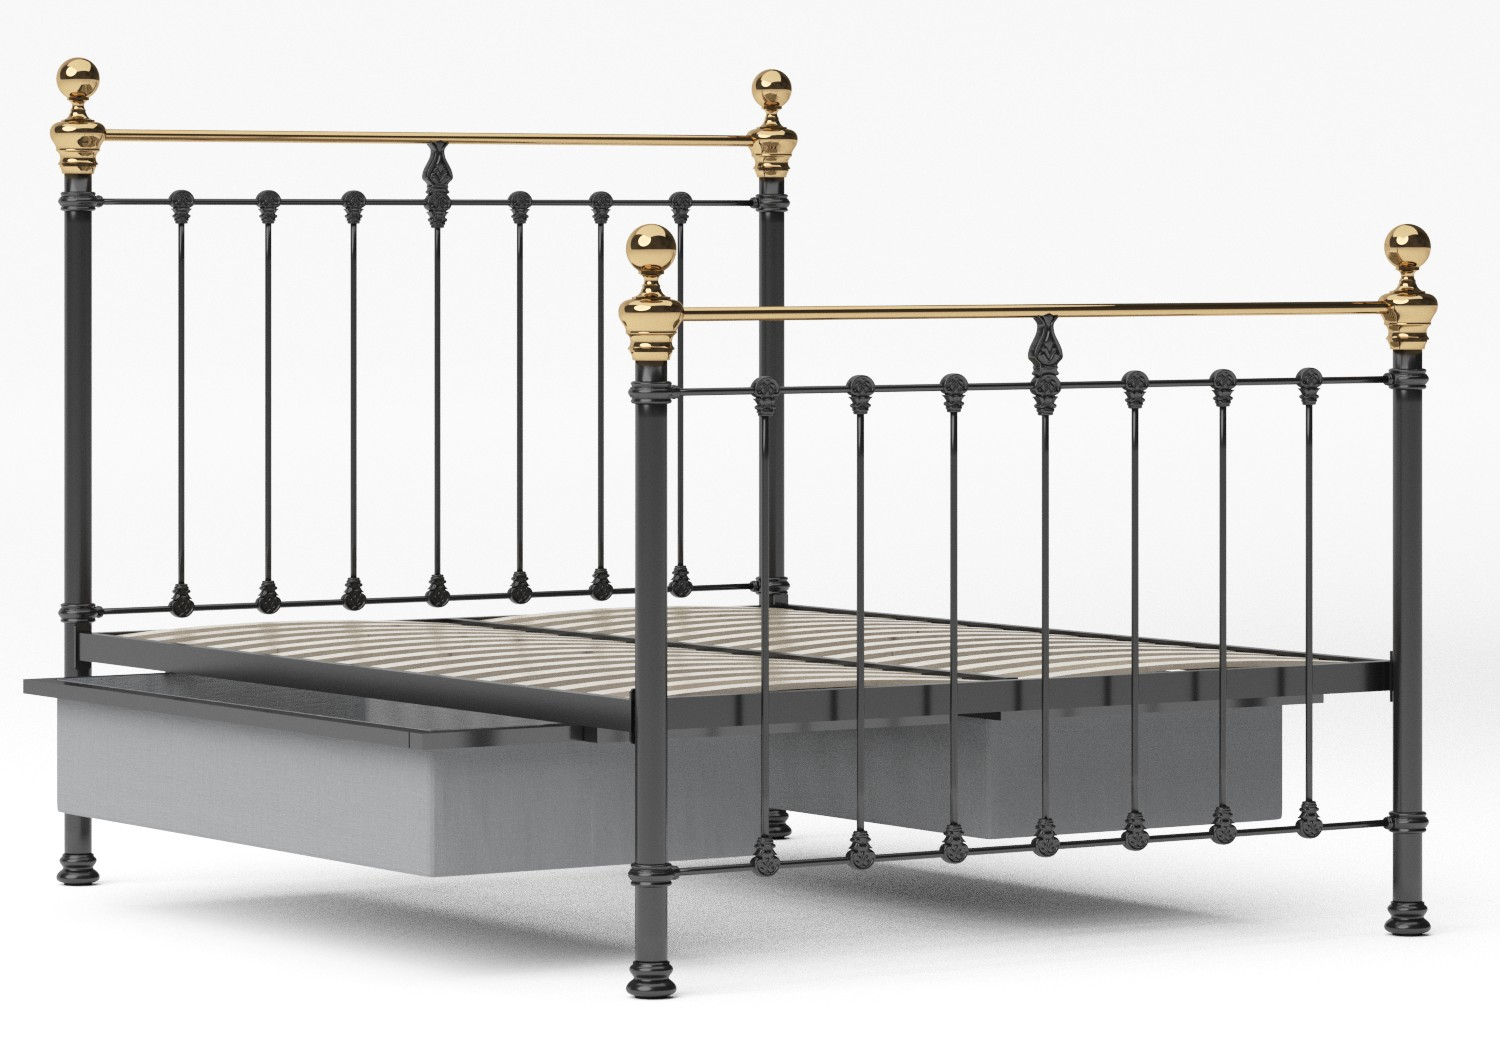 Hamilton Iron/Metal Bed in Satin Black with Brass details shown with underbed storage